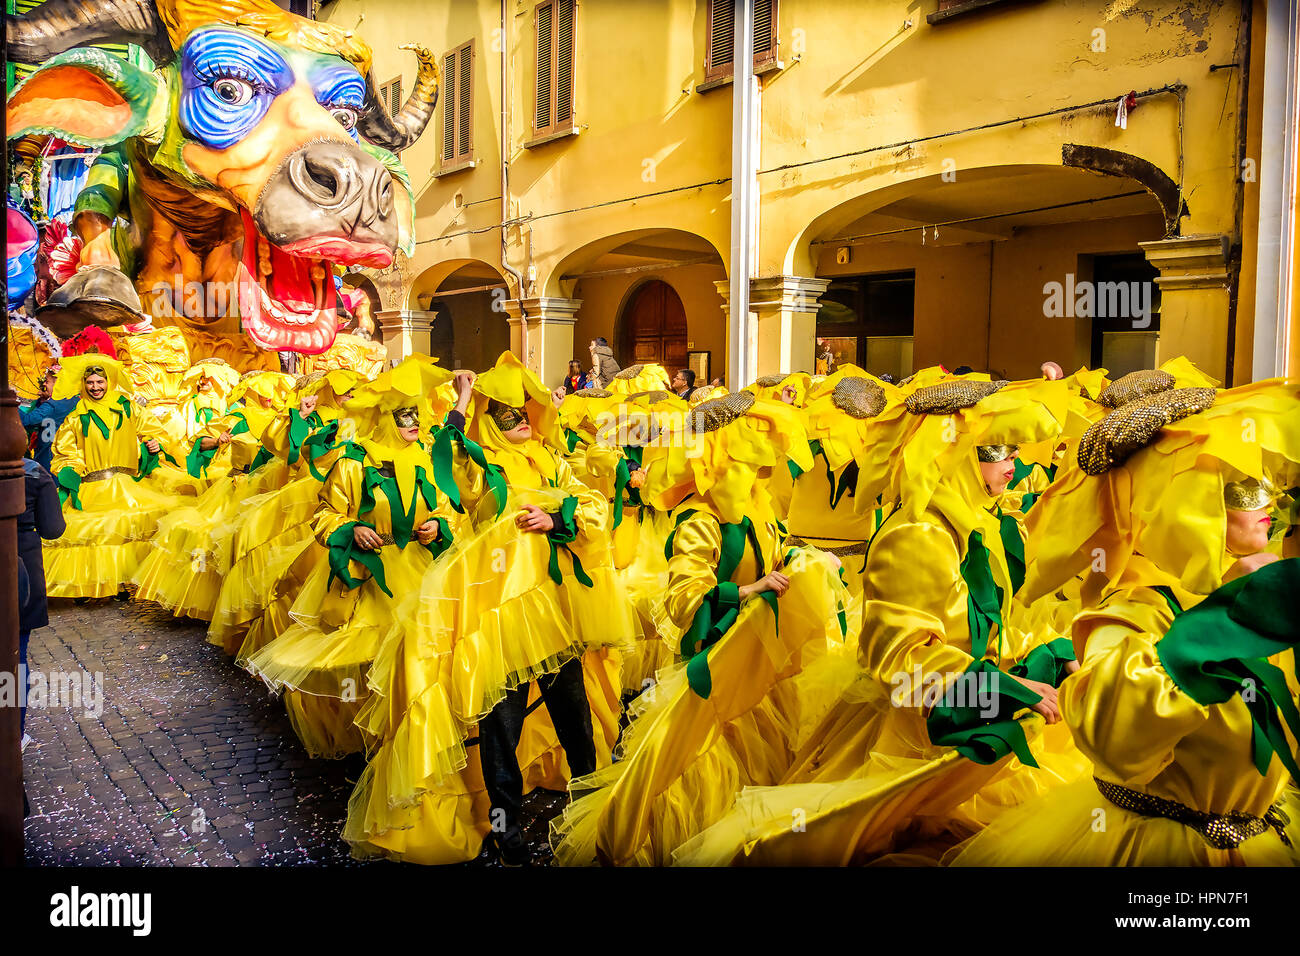 Carnevale di Cento colorful cow parade float people choreography yellow sunflower costumes - Stock Image